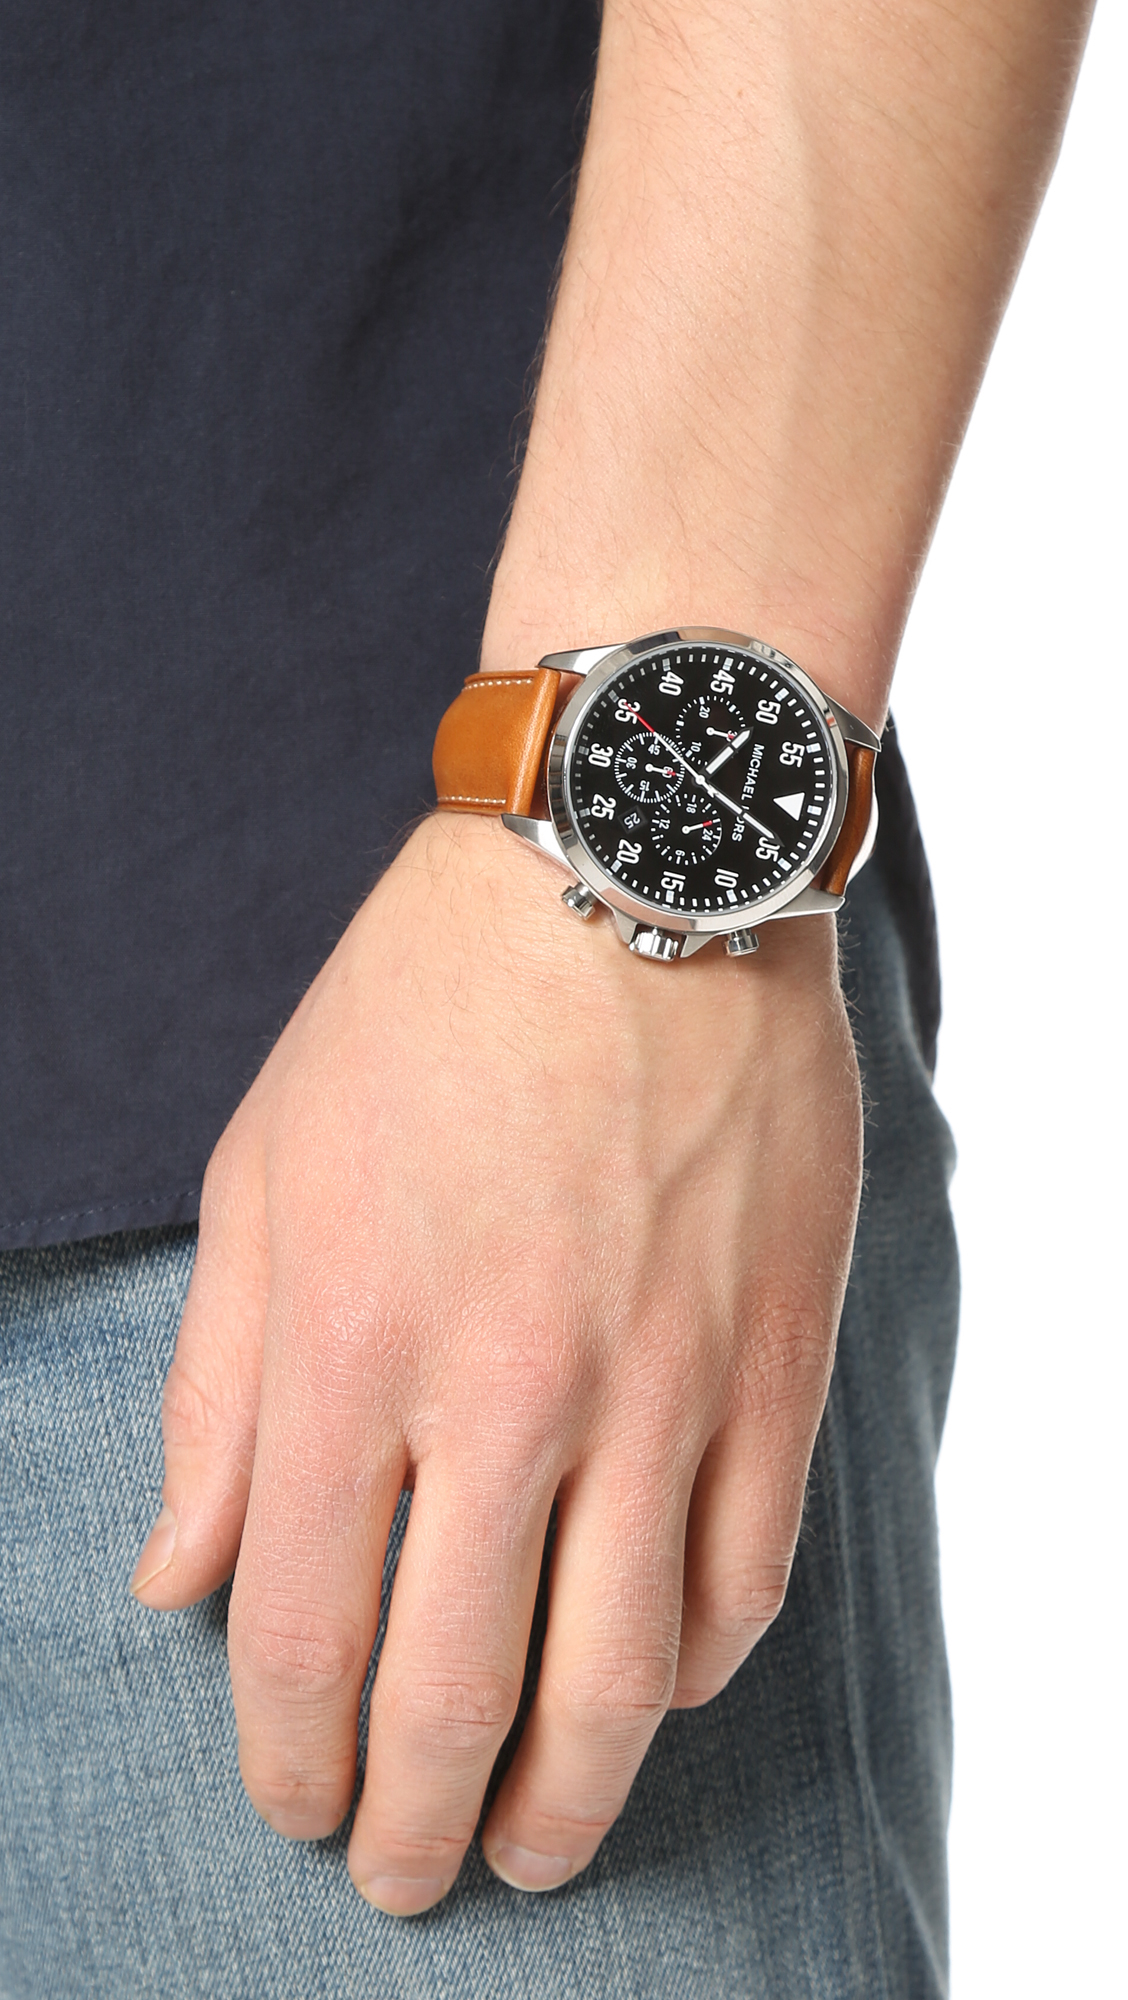 425b598117b2 Lyst - Michael Kors Gage Chronograph Watch in Brown for Men